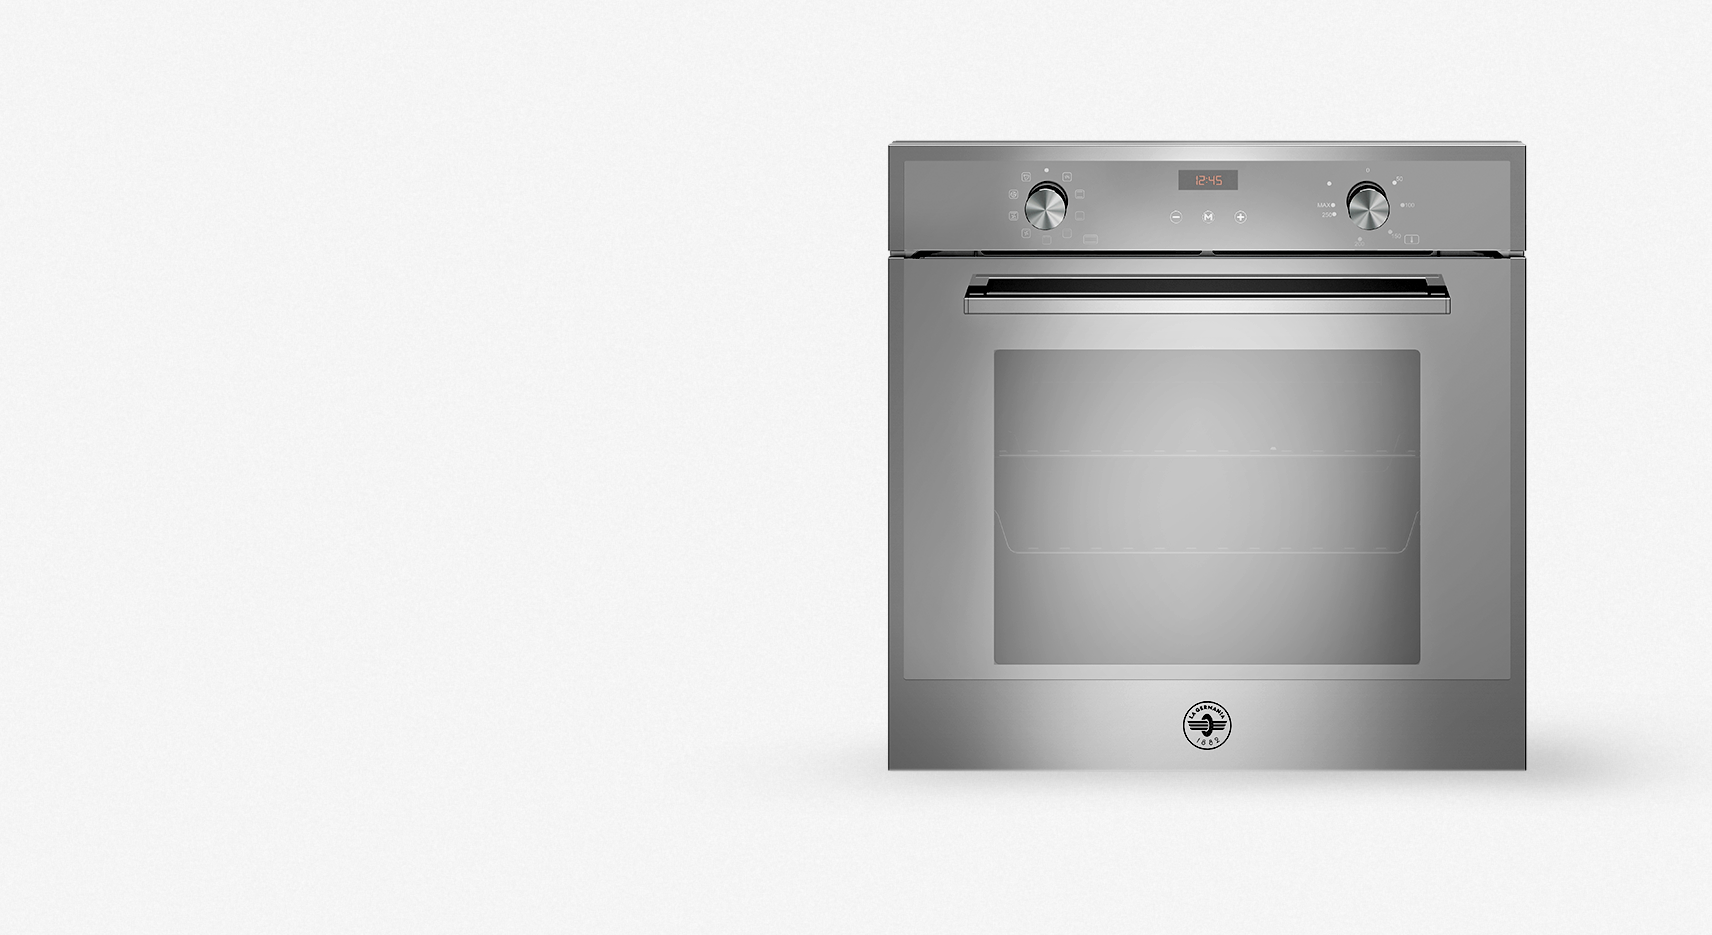 Multifunction Built-in Oven <br>9 Settings and LED Display